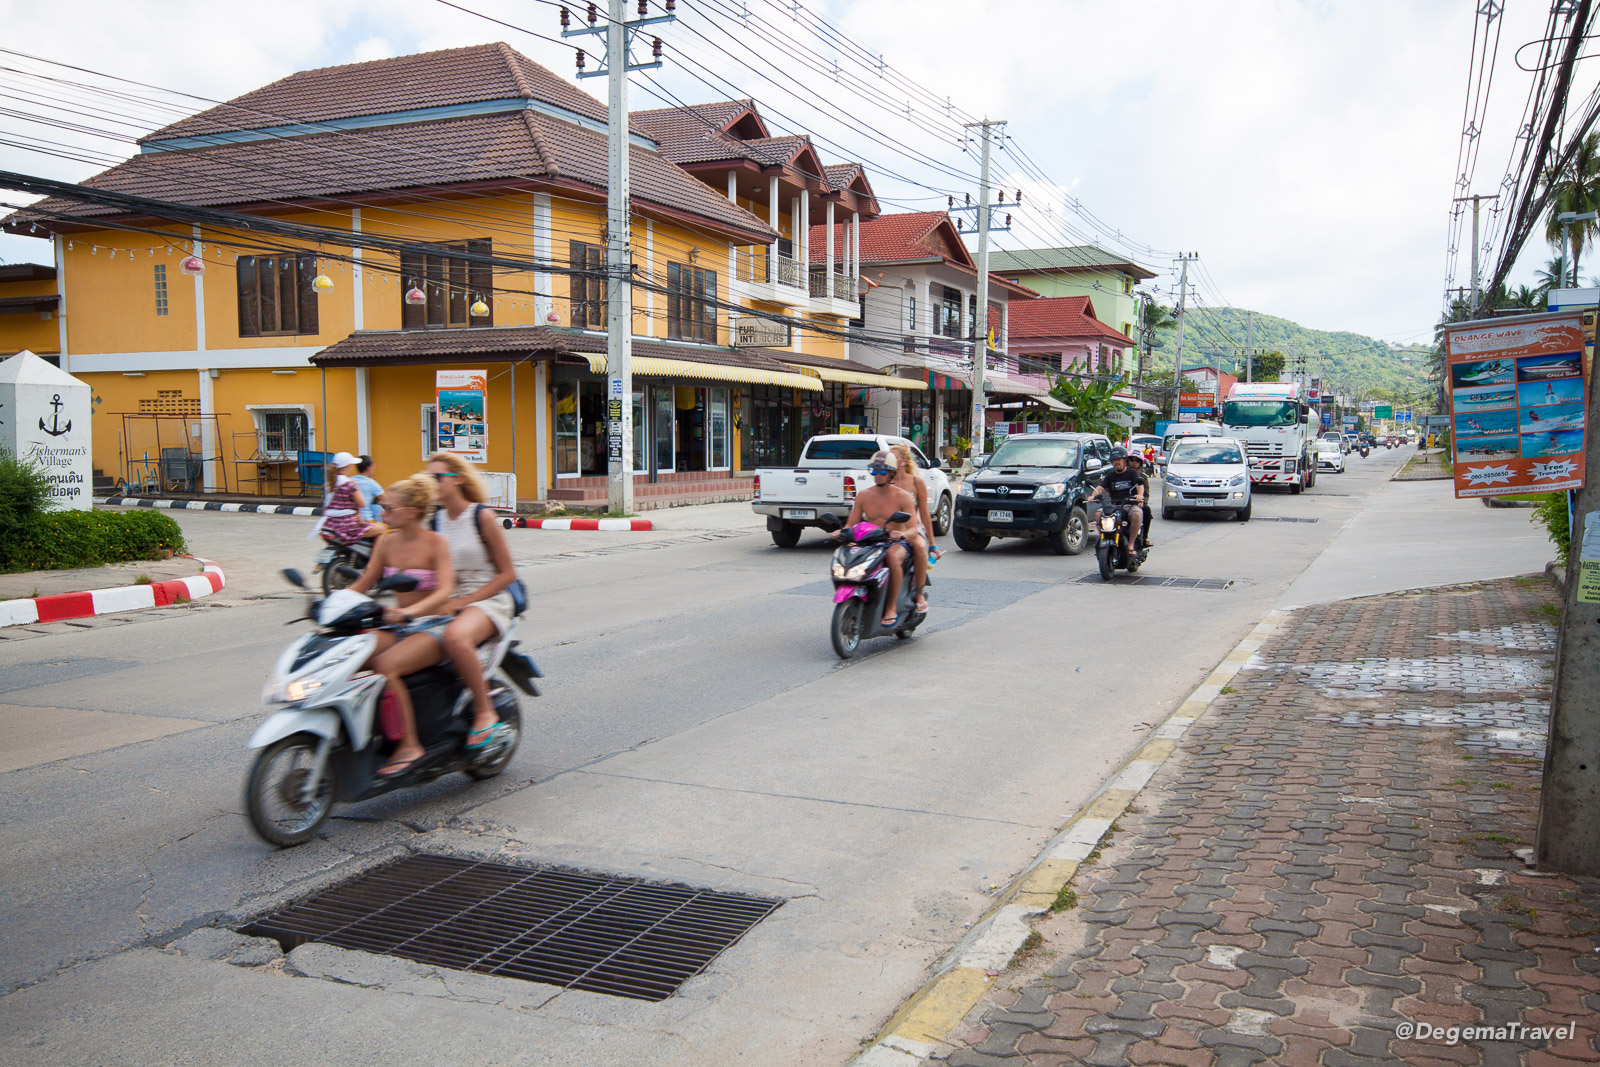 Tourist driving in Koh Samui, Thailand without helmets